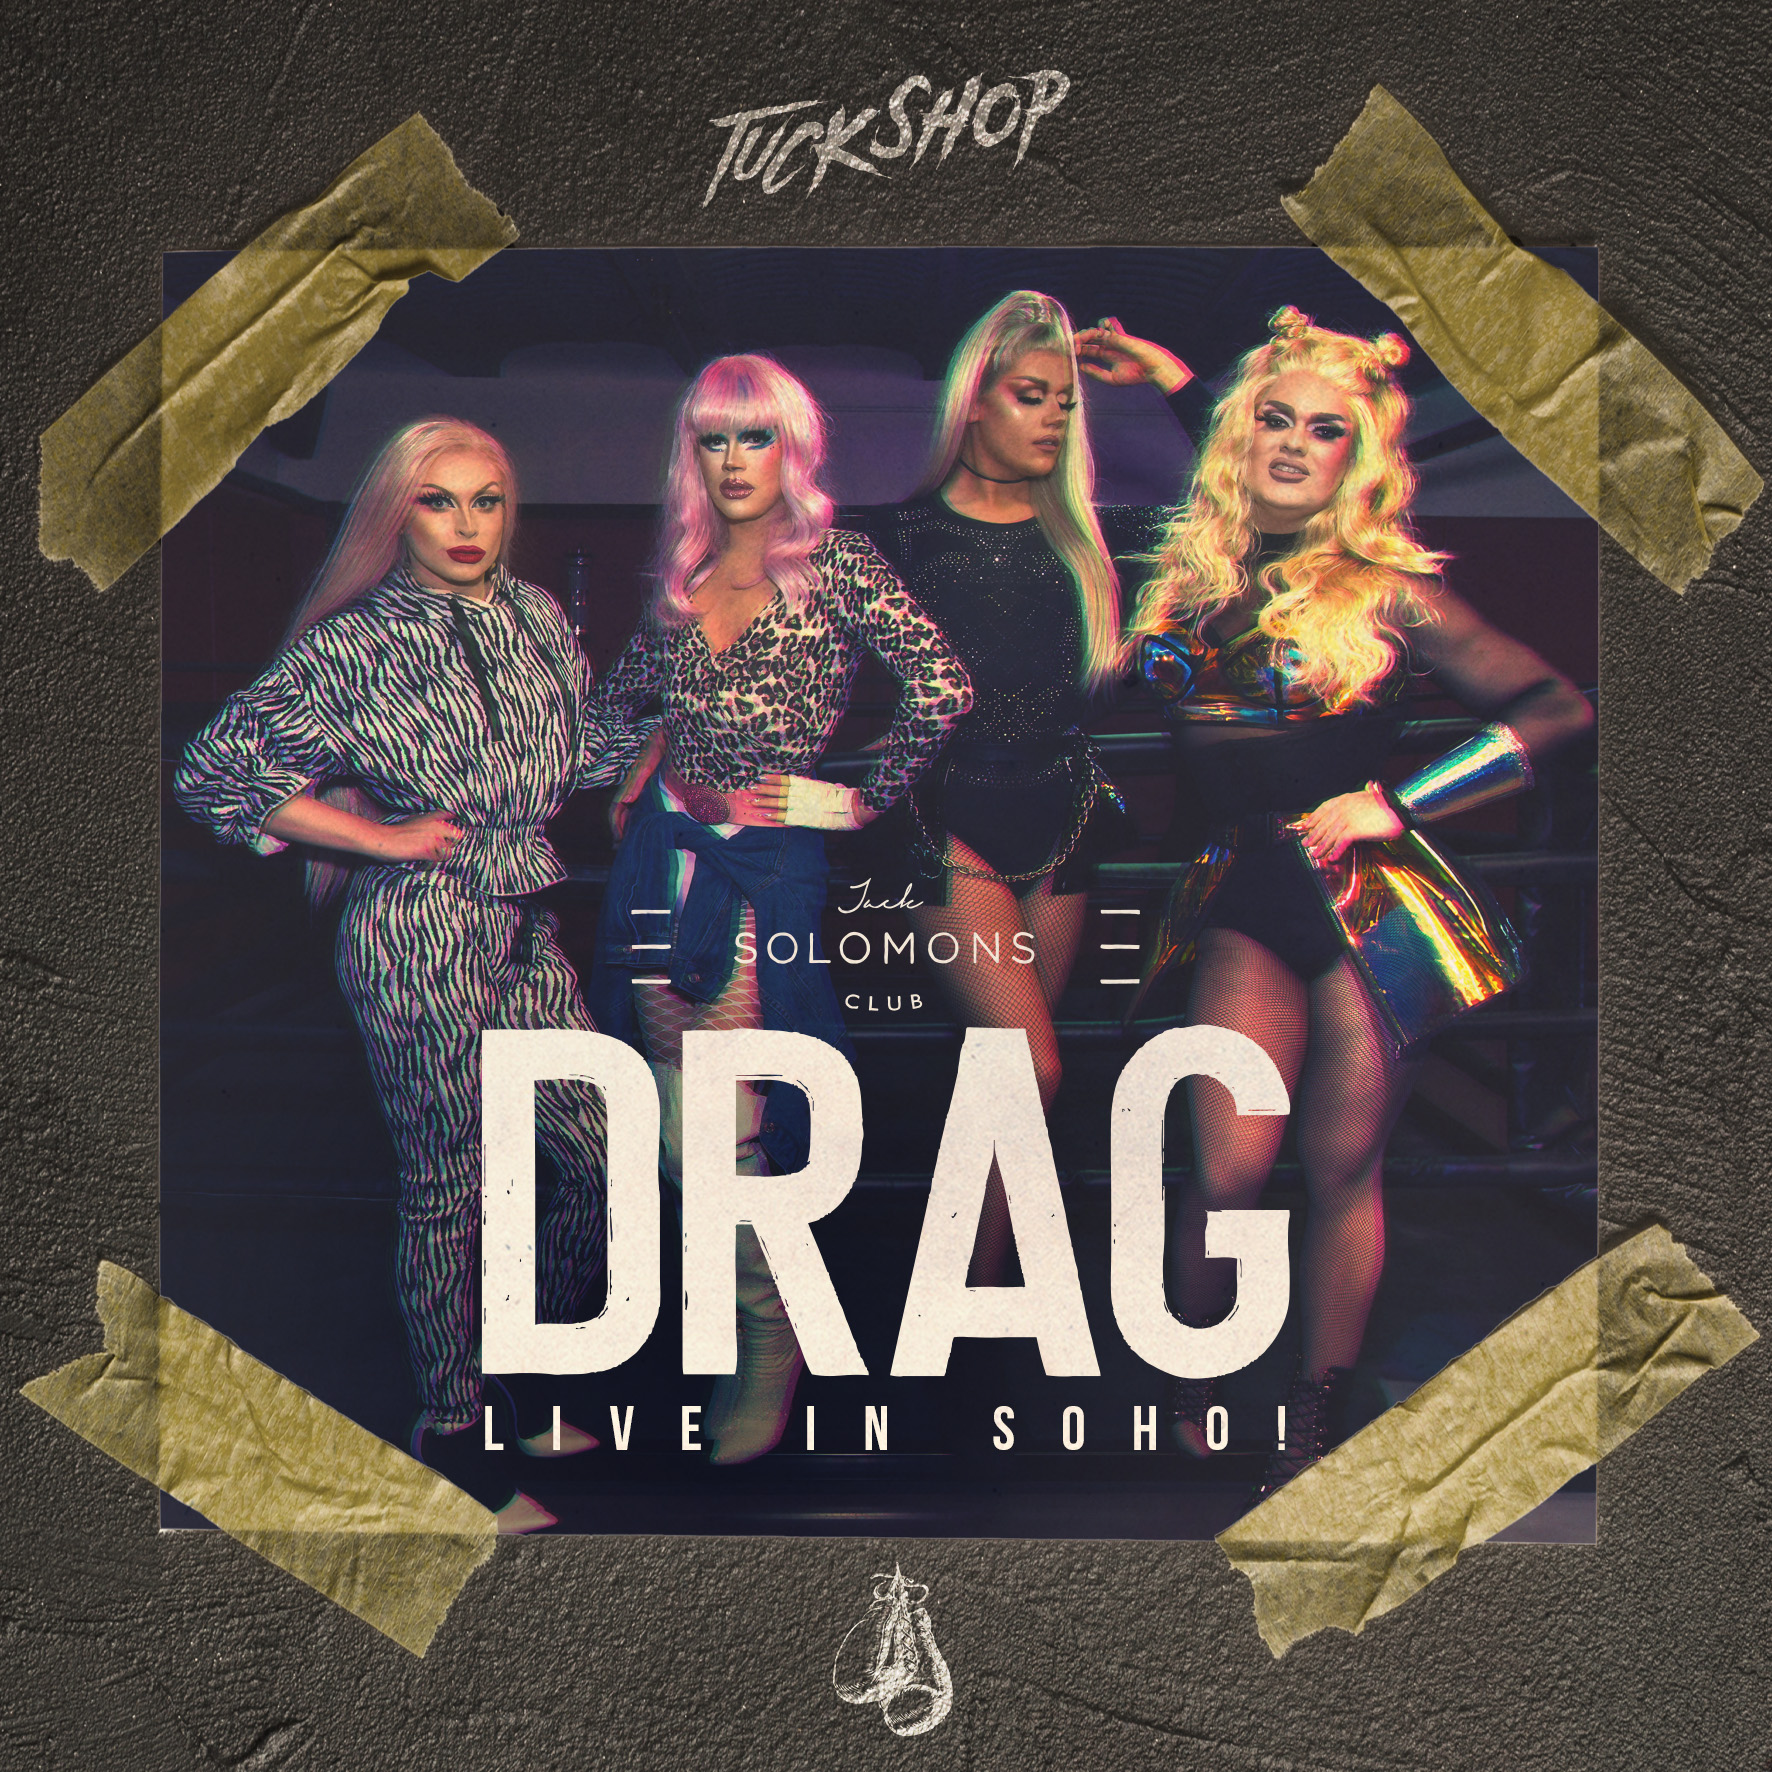 DRAG - Live in Soho!